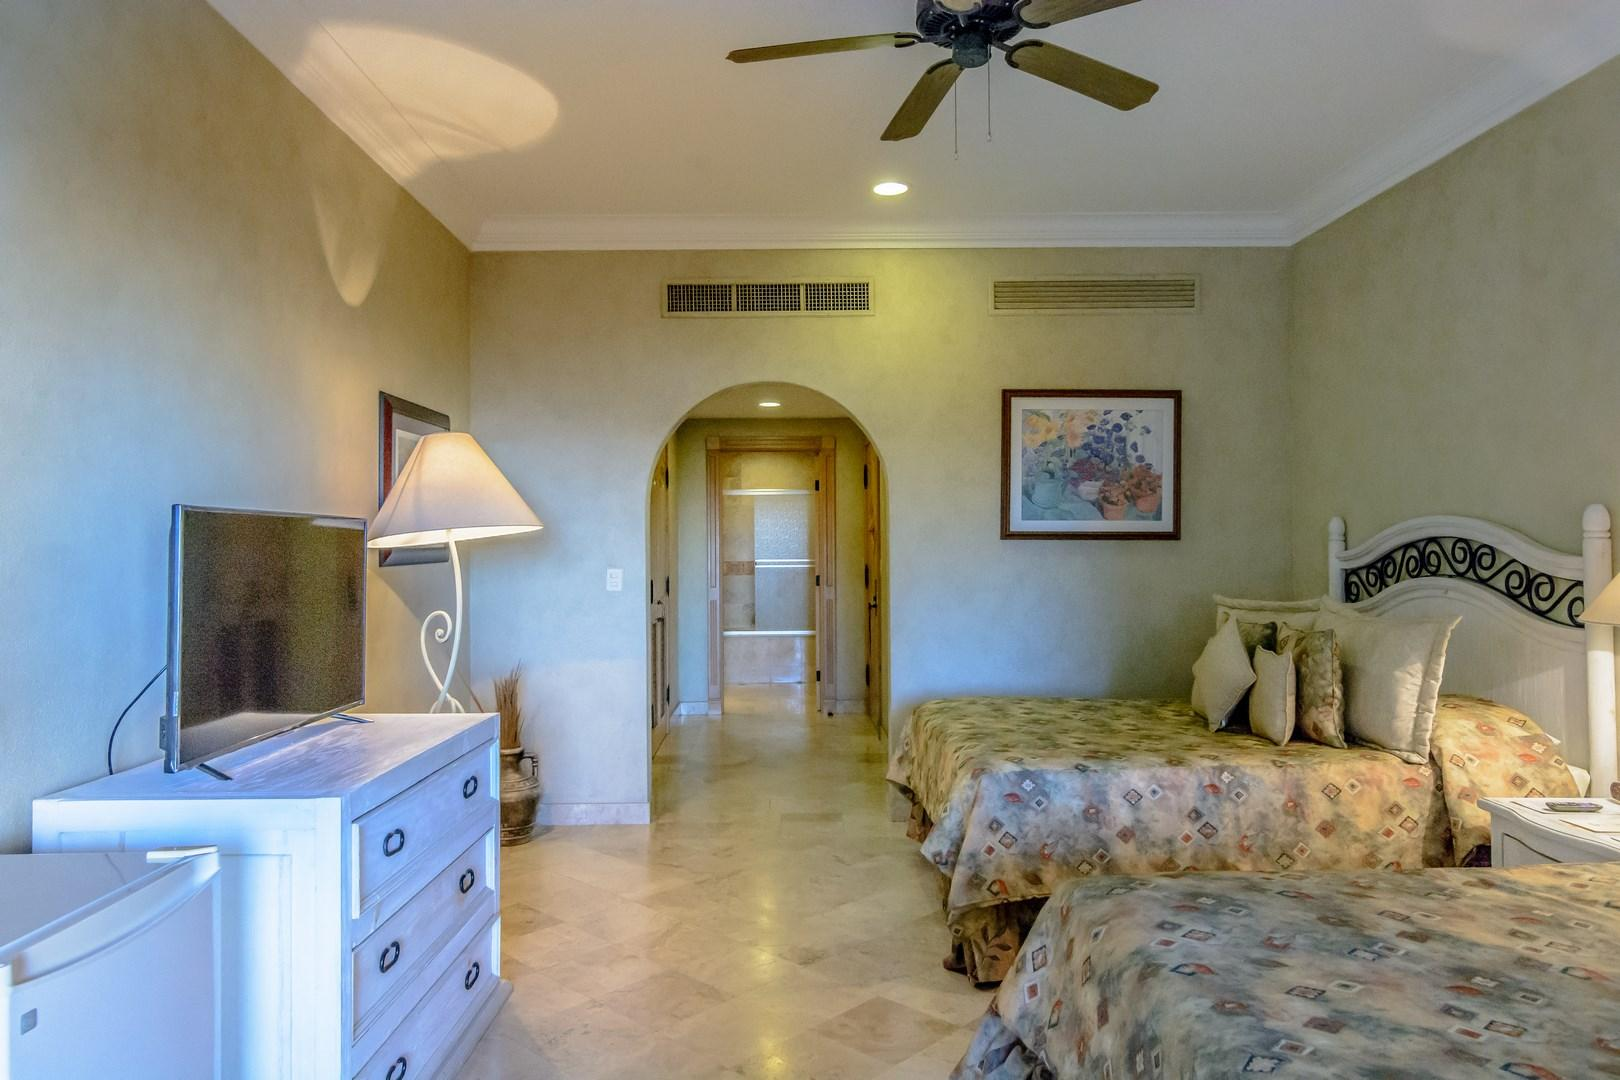 Cabo San Lucas, 2 Bedrooms Bedrooms, 6 Rooms Rooms,3 BathroomsBathrooms,Condo,For Sale,Camino Viajo a SJDC,13-1485